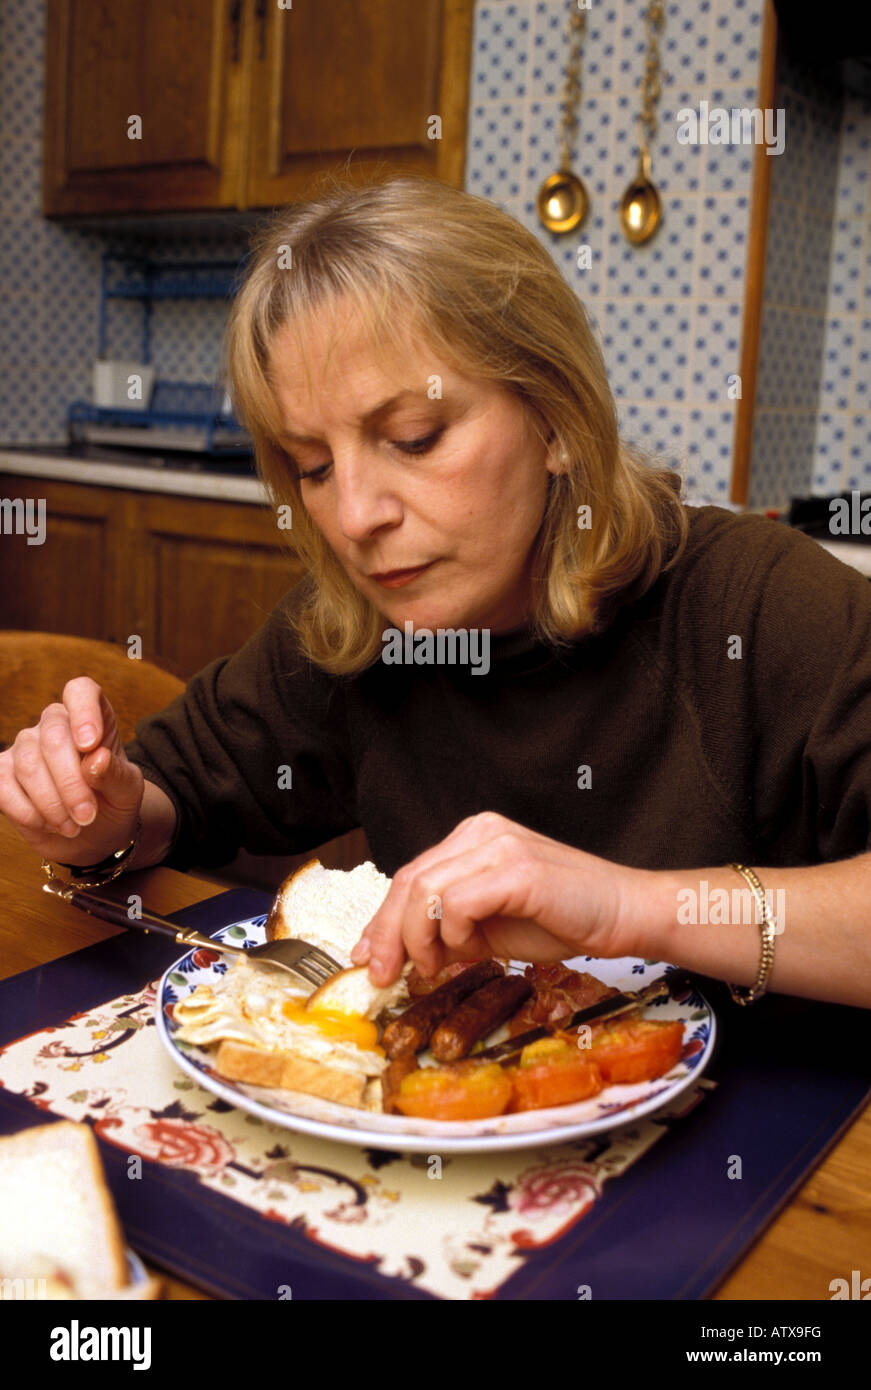 meal. - Stock Image